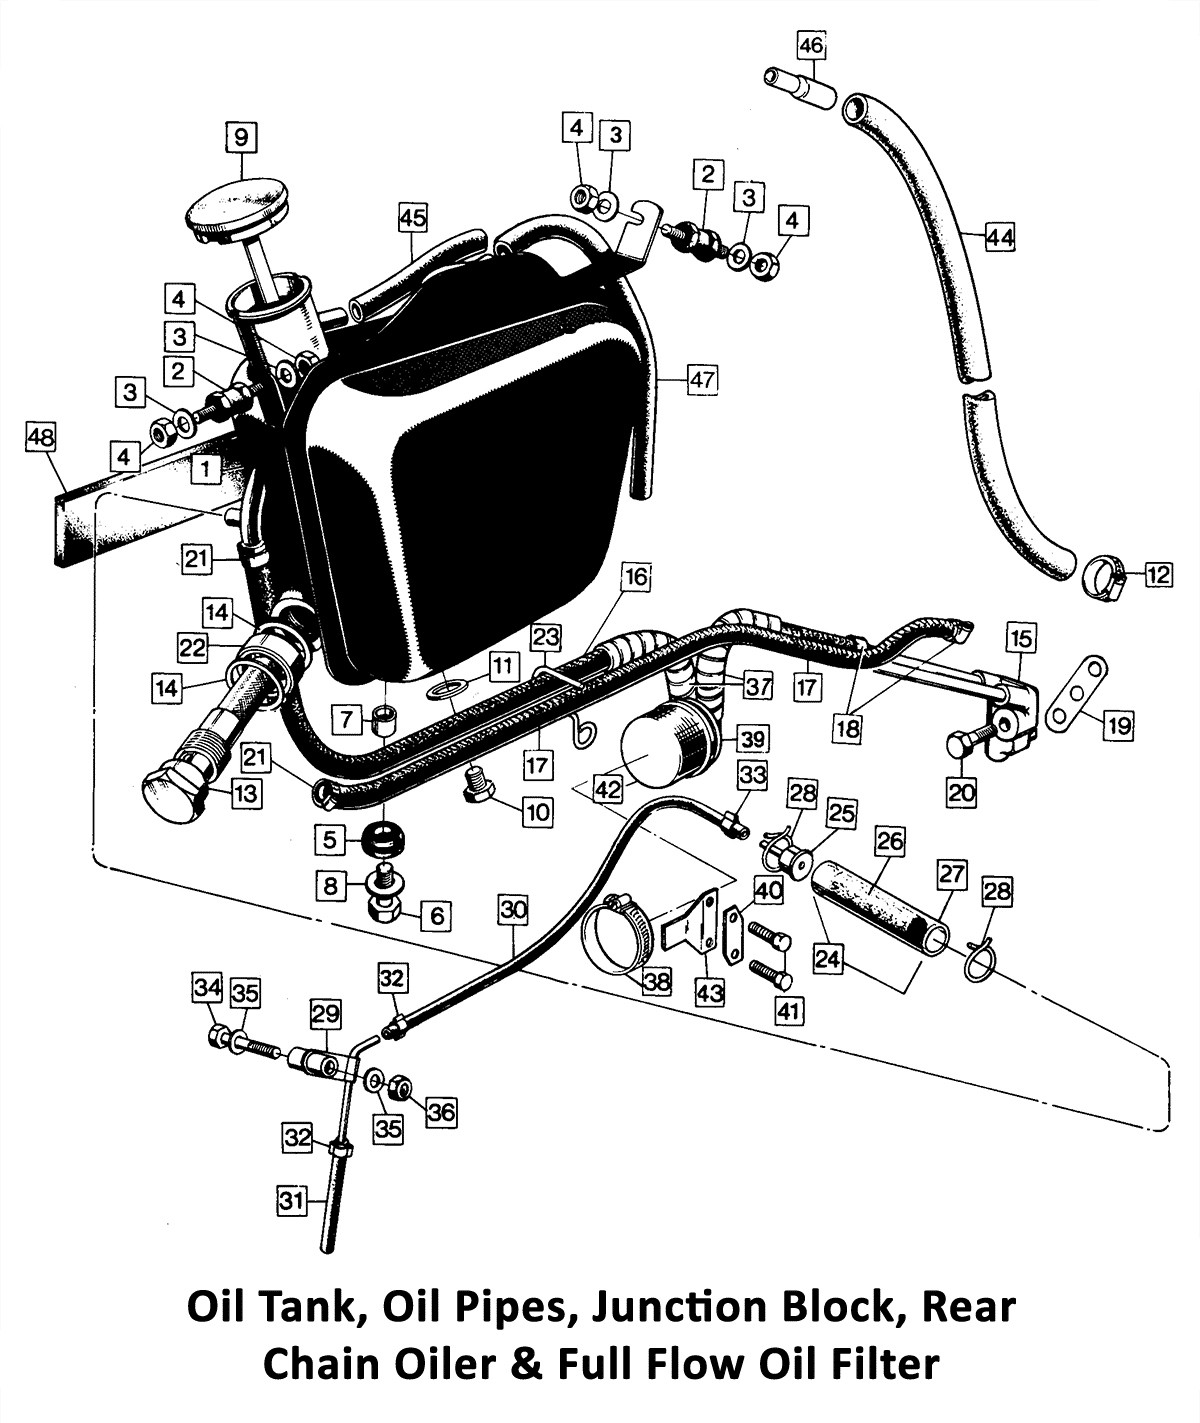 1973-74 Norton Commando 750 & 850 Oil Tank, Oil Pipes, Junction Block, Rear Chain Oiler & Full Flow Oil Filter